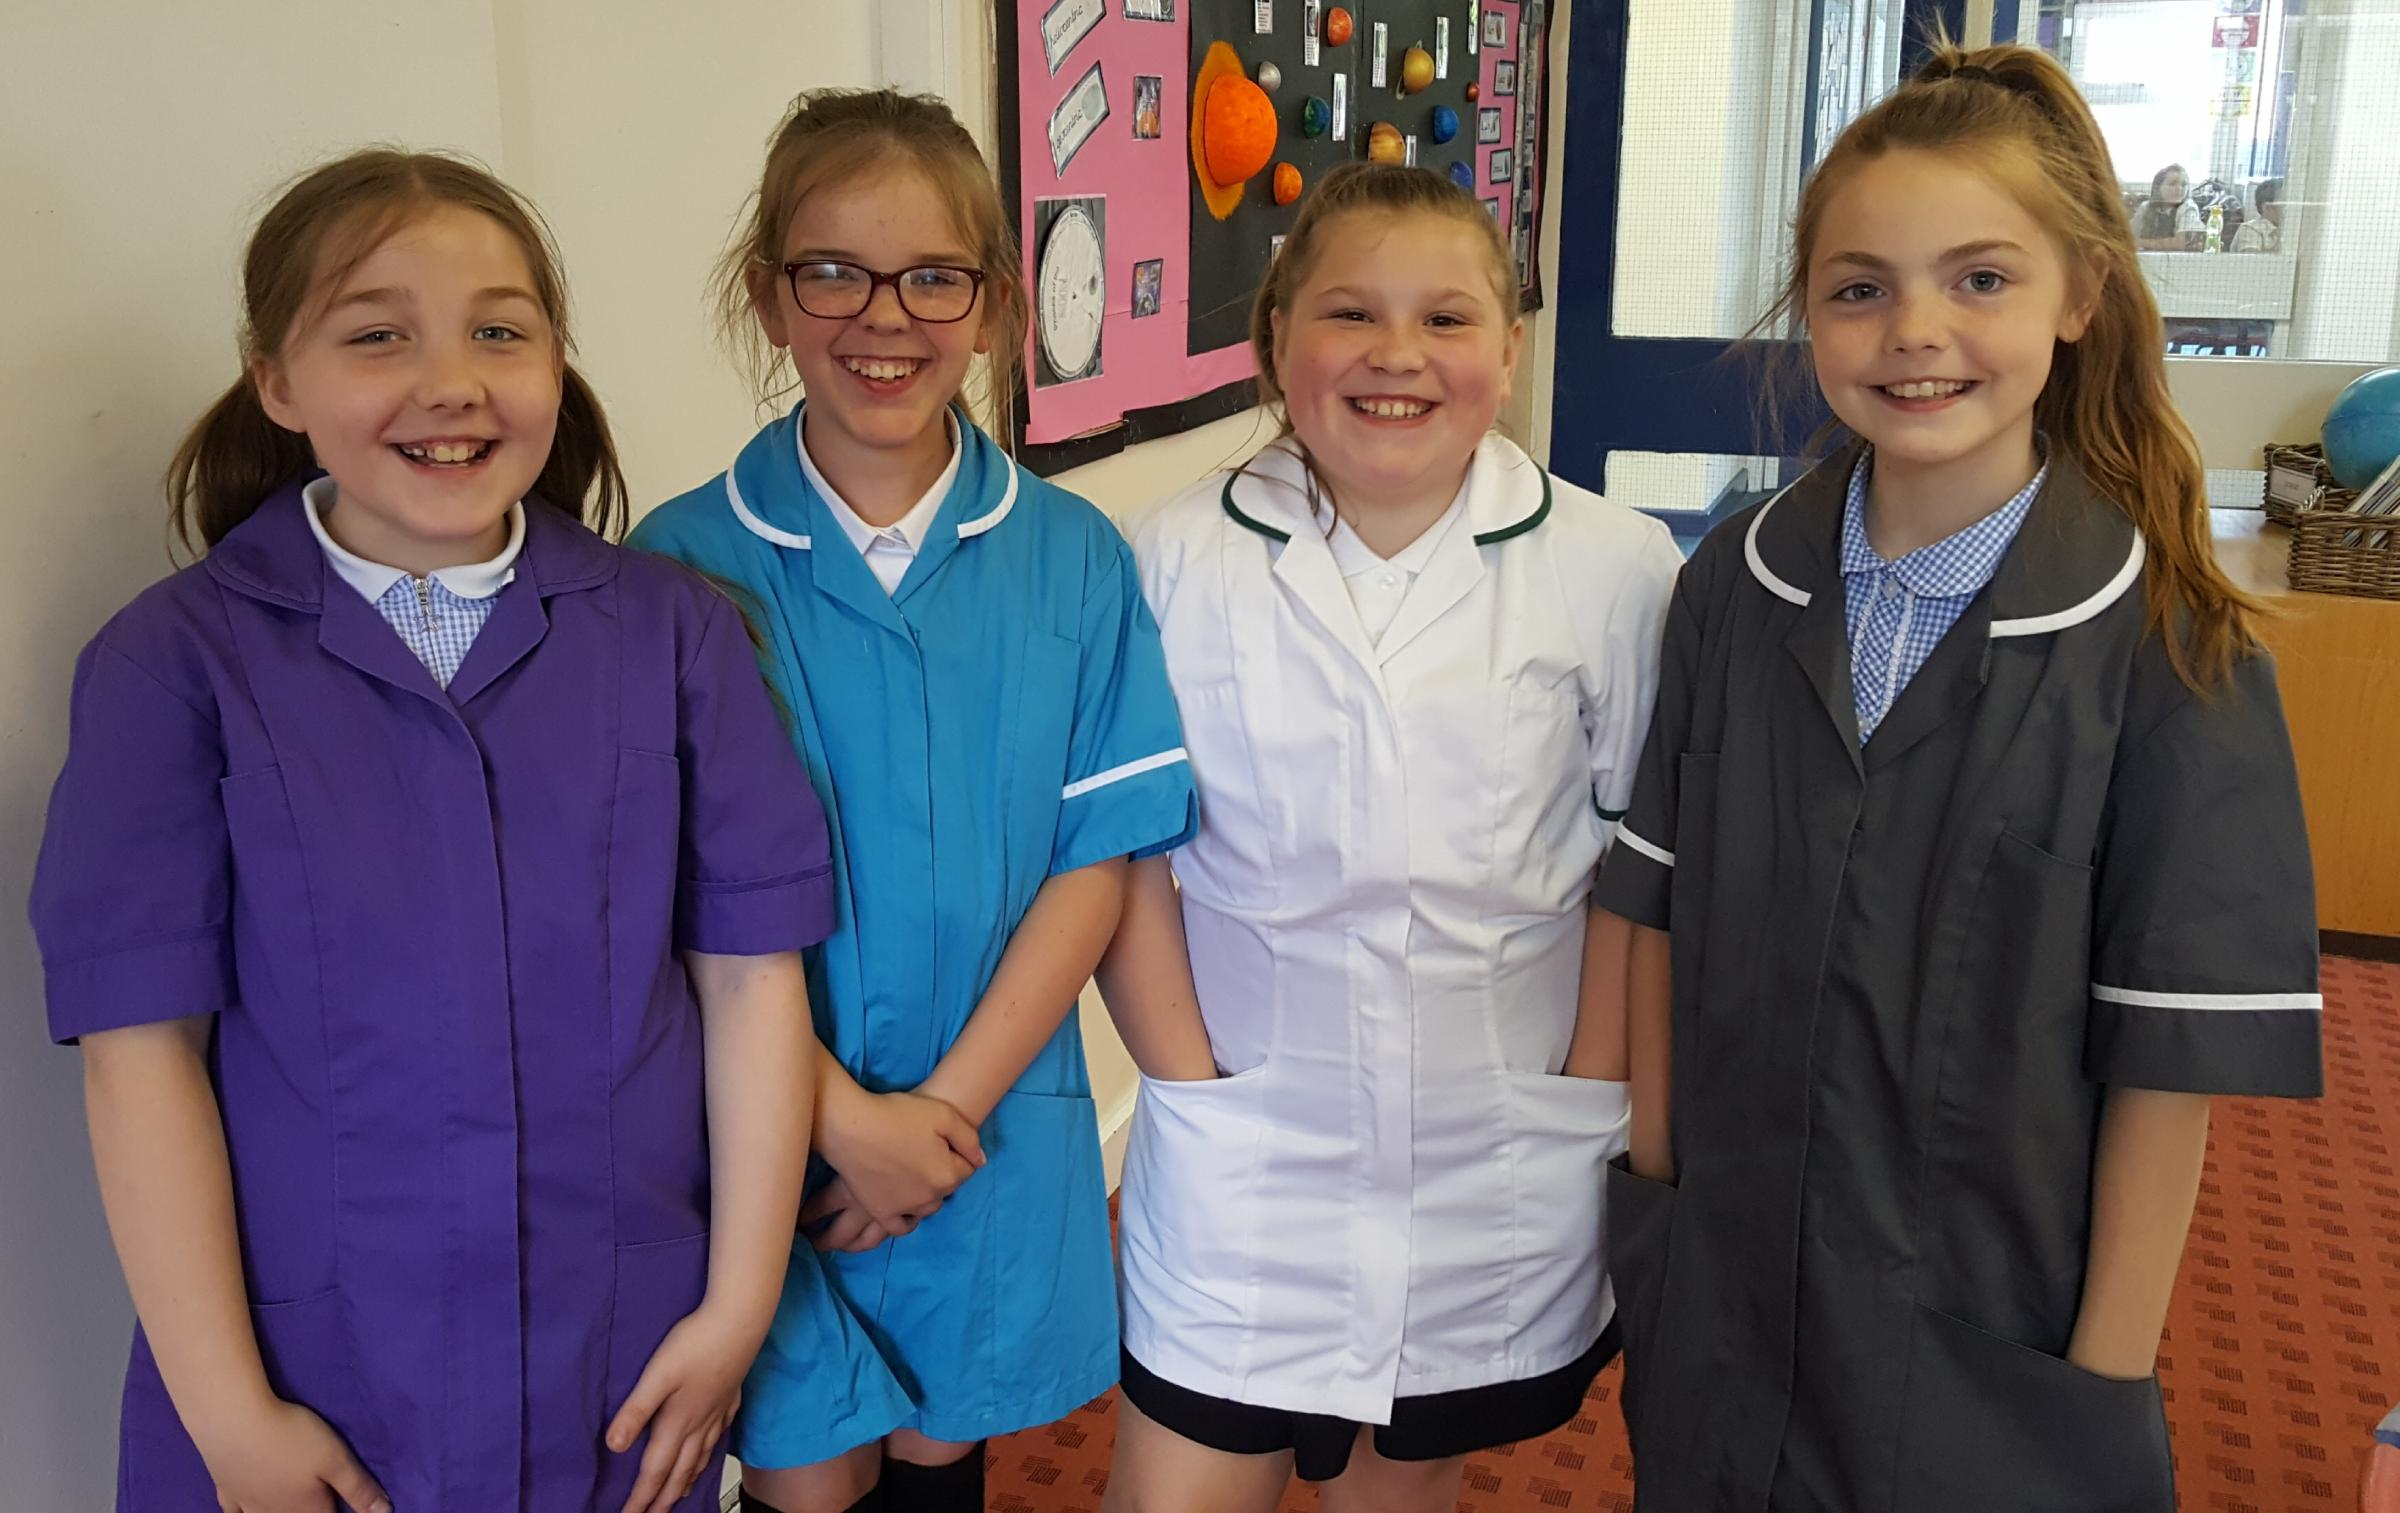 Year 5 pupils Eve Boughey, Caydee Shaw, Kaelyn Clarke and Ellie Billinge.